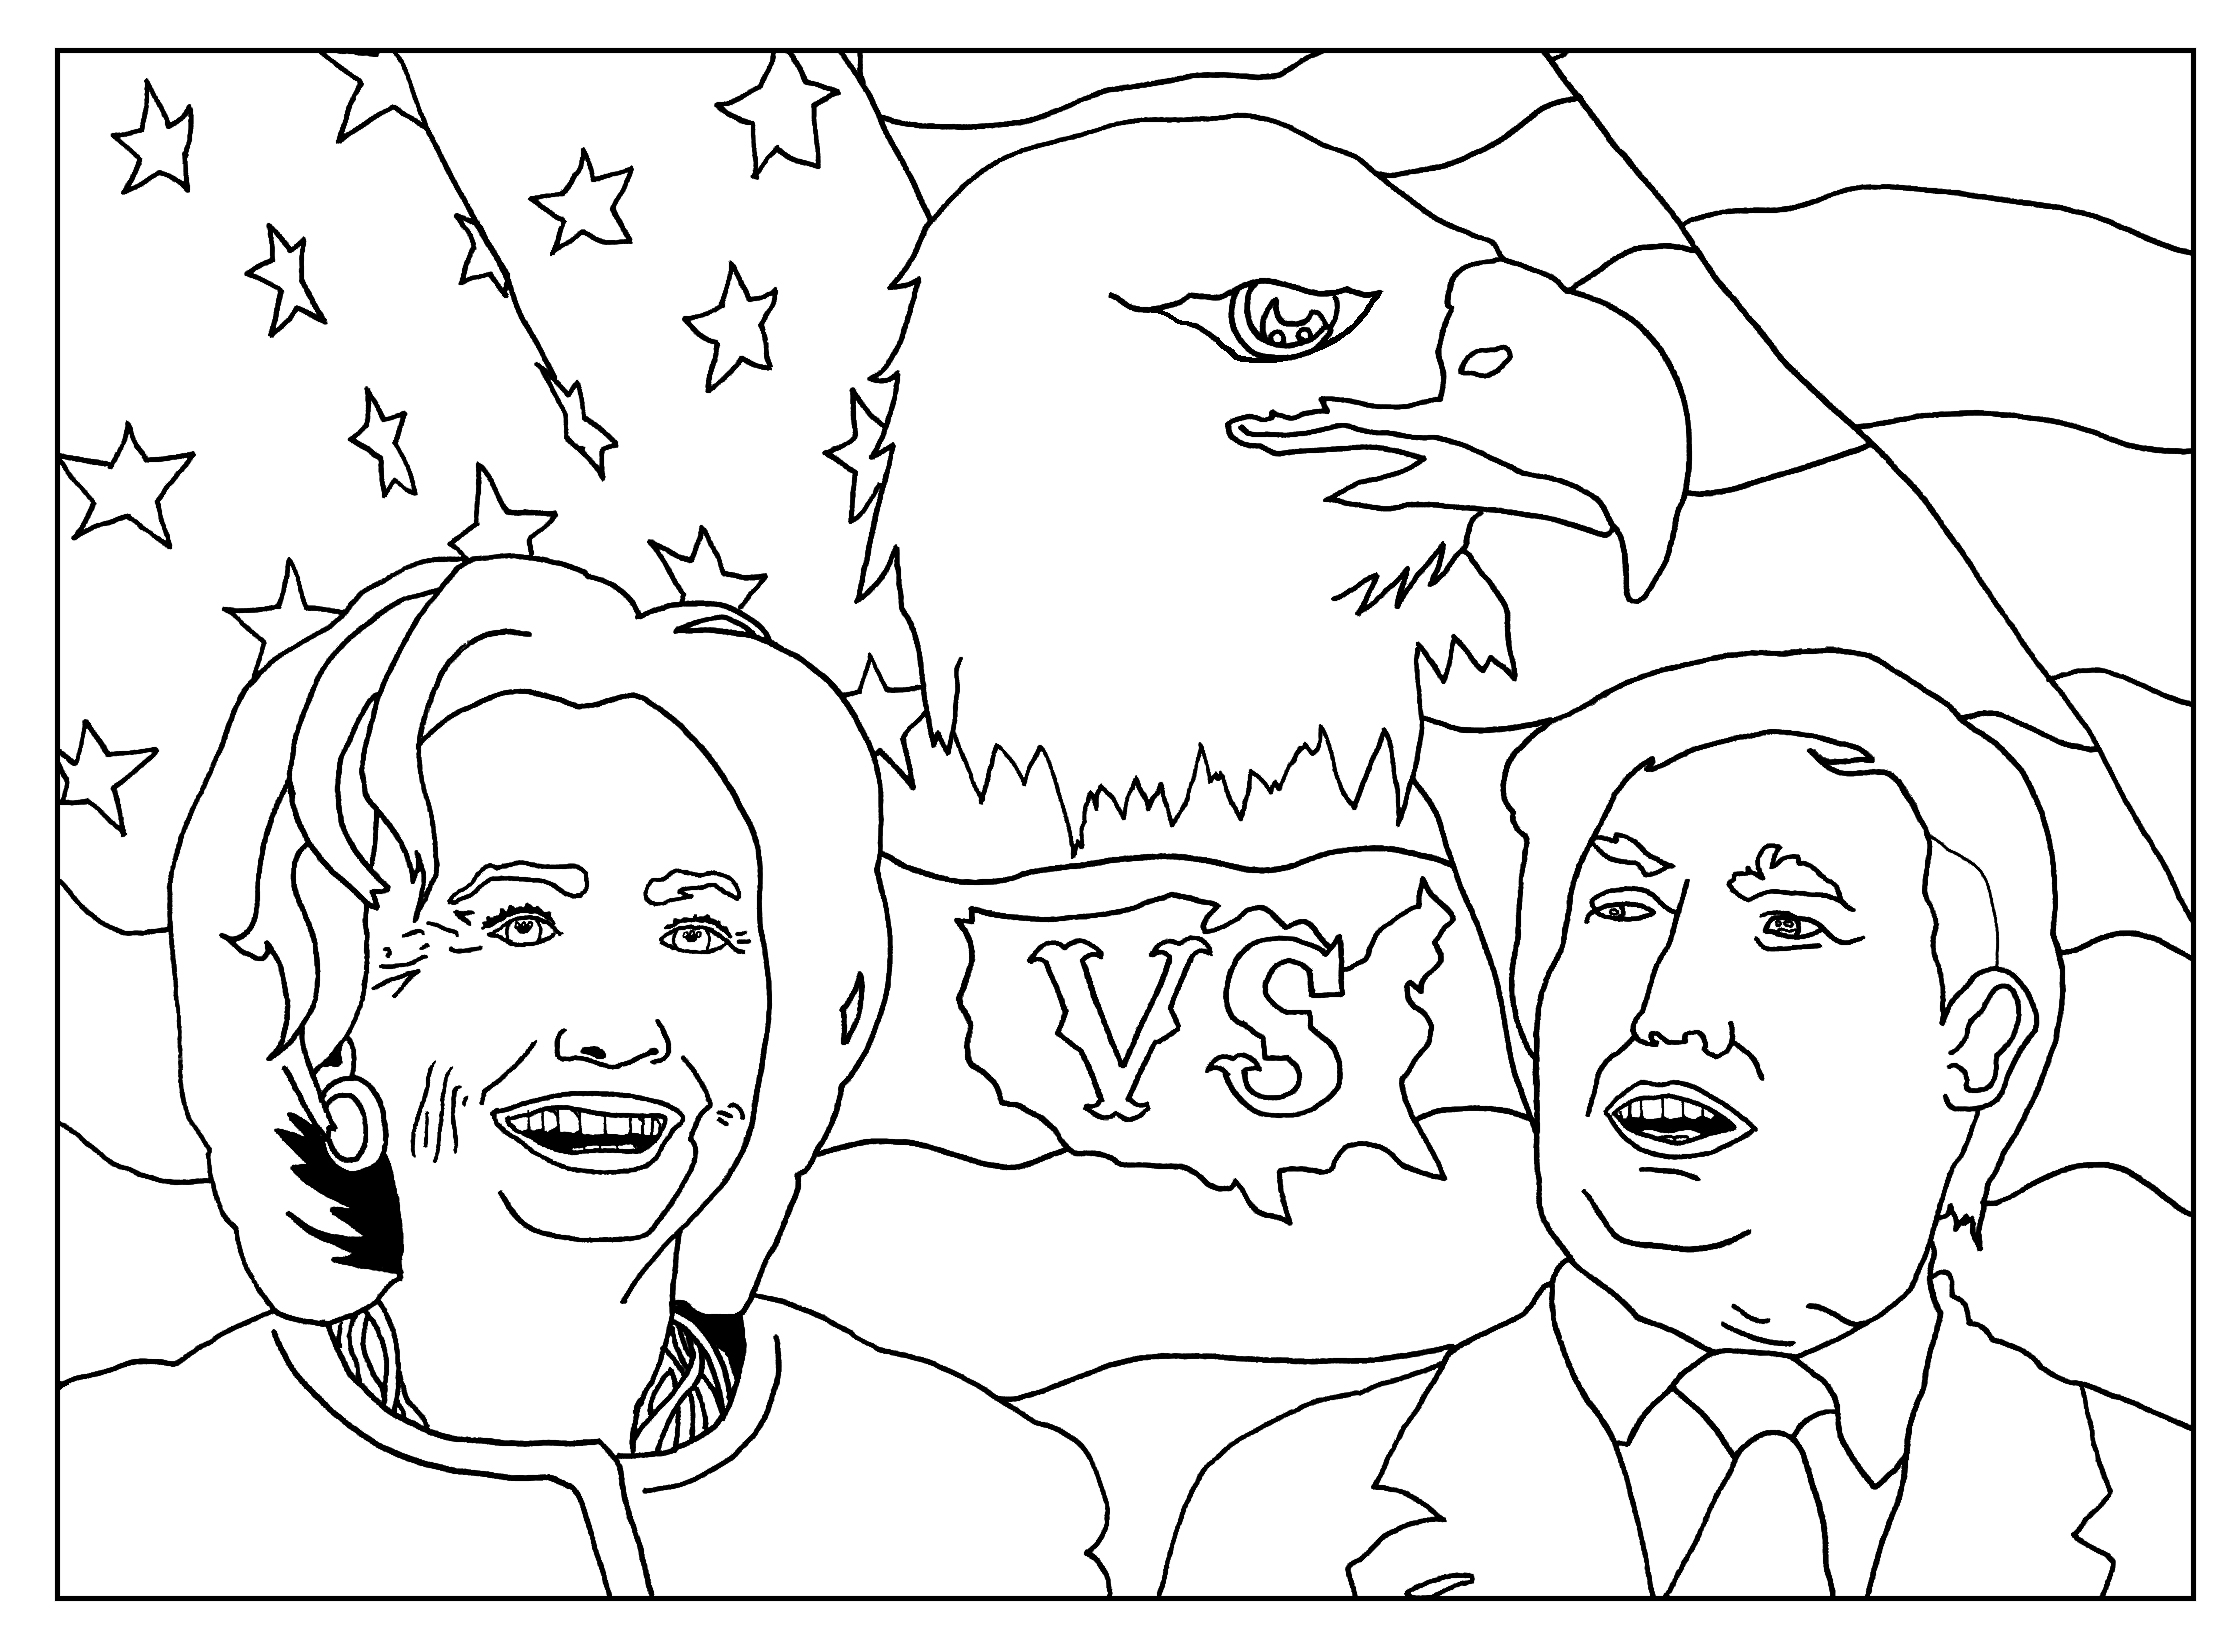 Special coloring page for the US Elections : Clinton vs Trump : version without text